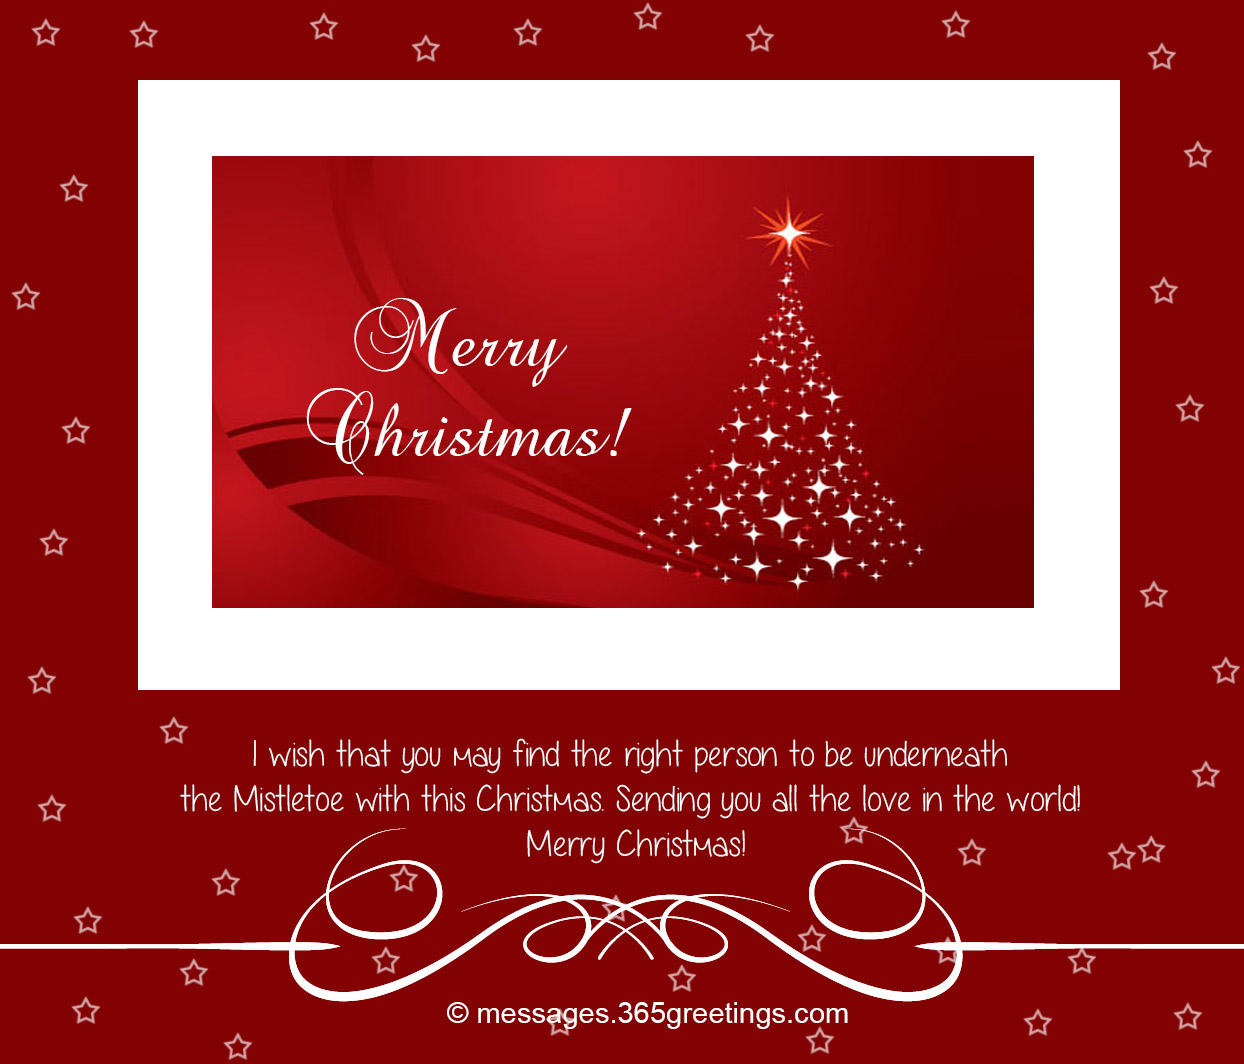 Christmas Quotes For Cards: Best Christmas Card Sayings And Greetings